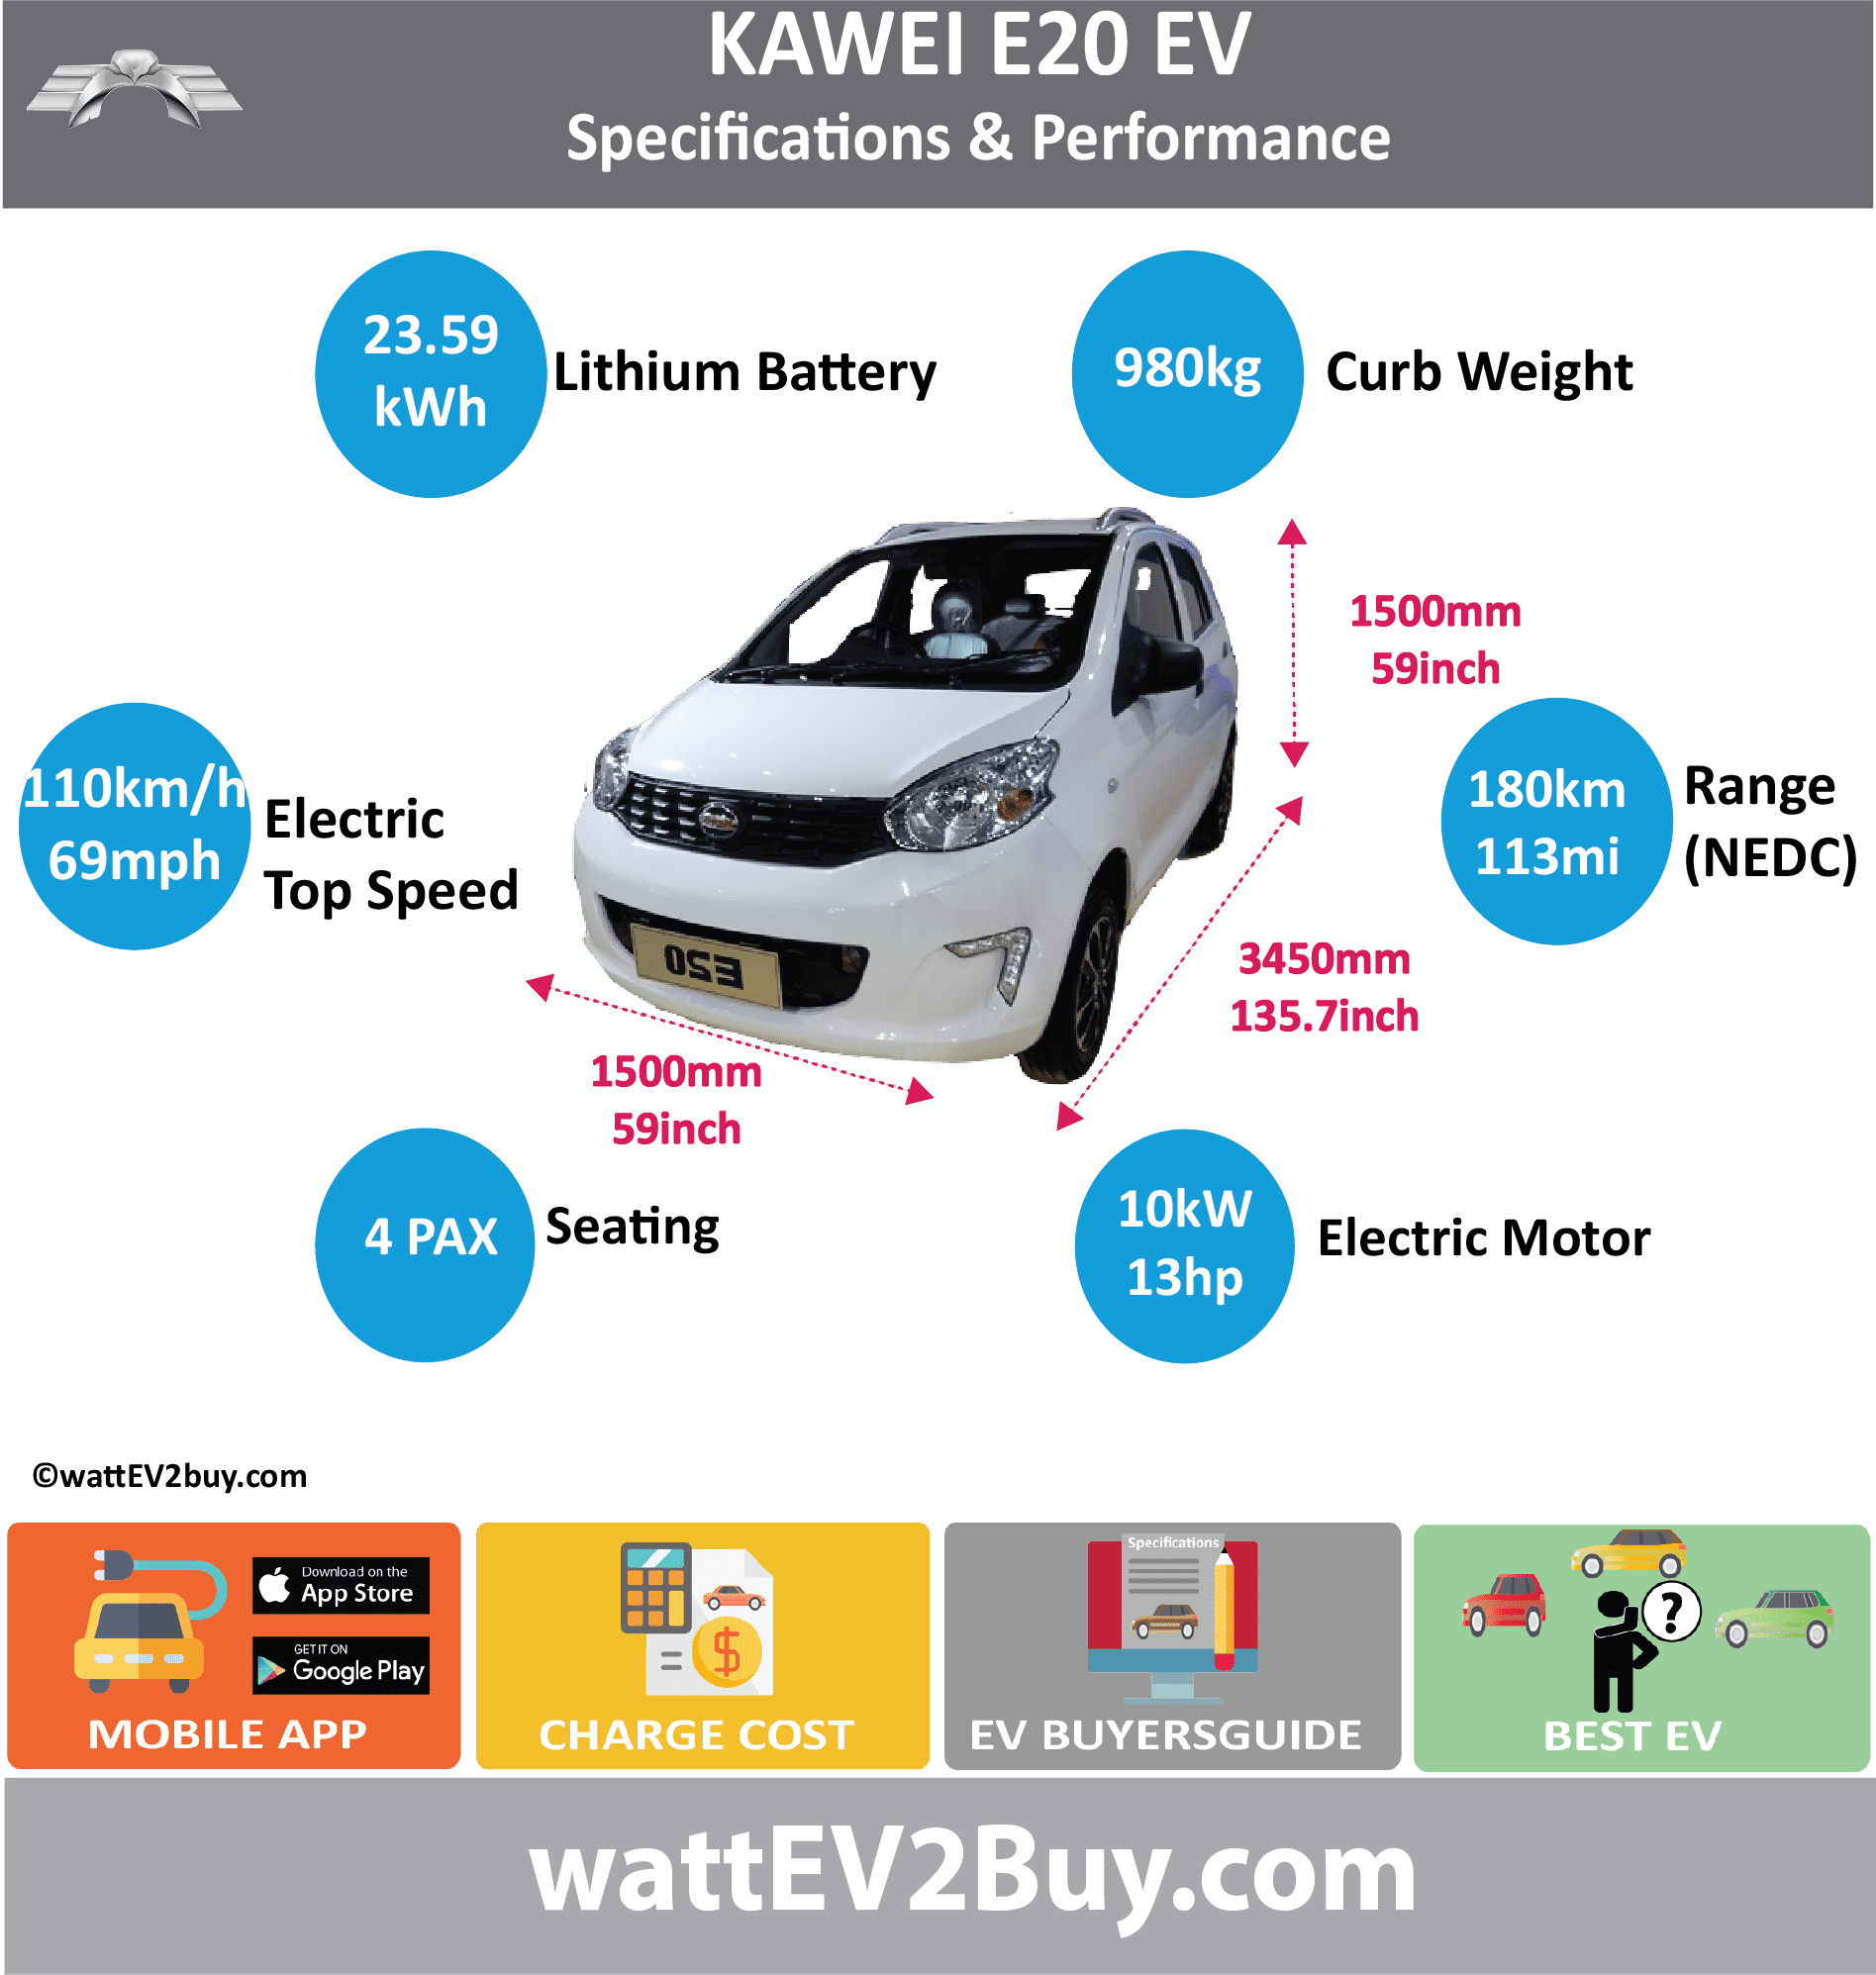 Kawei E20 EV Specs	 wattev2Buy.com	2018 Battery Chemistry	Sanyuan Li-ion Battery Capacity kWh	23.59 Battery Nominal rating kWh	 Voltage V	 Amps Ah	 Cells	 Modules	 Efficiency	 Weight (kg)	169 Cell Type	 SOC	 Cooling	 Cycles	 Battery Type	 Depth of Discharge (DOD)	 Energy Density Wh/kg	 Battery Manufacturer	Lishen Power Battery Systems Co., Ltd Battery Warranty - years	 Battery Warranty - km	 Battery Warranty - miles	 Battery Electric Range - at constant 38mph	 Battery Electric Range - at constant 60km/h	 Battery Electric Range - NEDC Mi	112.5 Battery Electric Range - NEDC km	180 Battery Electric Range - CCM Mi	 Battery Electric Range - CCM km	 Battery Electric Range - EPA Mi	 Battery Electric Range - EPA km	 Electric Top Speed - mph	68.75 Electric Top Speed - km/h	110 Acceleration 0 - 100km/h sec	 Acceleration 0 - 50km/h sec	 Acceleration 0 - 62mph sec	 Acceleration 0 - 60mph sec	 Acceleration 0 - 37.2mph sec	 Wireless Charging	 Direct Current Fast Charge kW	 Charger Efficiency	 Onboard Charger kW	 Onboard Charger Optional kW	 Charging Cord - amps	 Charging Cord - volts	 LV 1 Charge kW	 LV 1 Charge Time (Hours)	 LV 2 Charge kW	 LV 2 Charge Time (Hours)	 LV 3 CCS/Combo kW	 LV 3 Charge Time (min to 70%)	 LV 3 Charge Time (min to 80%)	 LV 3 Charge Time (mi)	 LV 3 Charge Time (km)	 Supercharger	 Charging System kW	 Charger Output	 Charge Connector	 Power Outlet kW	 Power Outlet Amps	 MPGe Combined - miles	 MPGe Combined - km	 MPGe City - miles	 MPGe City - km	 MPGe Highway - miles	 MPGe Highway - km	 Max Power - hp (Electric Max)	27 Max Power - kW  (Electric Max)	20 Max Torque - lb.ft  (Electric Max)	 Max Torque - N.m  (Electric Max)	 Drivetrain	 Generator	 Motor Type	 Electric Motor Manufacturer	 Electric Motor Output kW	10 Electric Motor Output hp	13.4102 Transmission	 Electric Motor - Rear	 Max Power - hp (Rear)	 Max Power - kW (Rear)	 Max Torque - lb.ft (Rear)	 Max Torque - N.m (Rear)	 Electric Motor - Front	 Max Power - hp (Front)	 Max Power - kW (Front)	 Max Torque - lb.ft (Front)	 Max Torque - N.m (Front)	 Energy Consumption kWh/100km	 Energy Consumption kWh/100miles	 Deposit	 GB Battery Lease per month	 EU Battery Lease per month	 MSRP (expected)	 EU MSRP (before incentives & destination)	 GB MSRP (before incentives & destination)	 US MSRP (before incentives & destination)	 CHINA MSRP (before incentives & destination)	 MSRP after incentives	 Vehicle	 Trims	 Doors	 Seating	4 Dimensions	 Luggage (L)	 GVWR (kg)	1380 GVWR (lbs)	 Curb Weight (kg)	980 Curb Weight (lbs)	 Payload Capacity (kg)	 Payload Capacity (lbs)	 Towing Capacity (lbs)	 Max Load Height (m)	 Ground Clearance (inc)	 Ground Clearance (mm)	 Lenght (mm)	3450 Width (mm)	1500 Height (mm)	1500 Wheelbase (mm)	2260 Lenght (inc)	135.7 Width (inc)	59.0 Height (inc)	59.0 Wheelbase (inc)	88.9 Other	 Utility Factor	 Auto Show Unveil	 Availability	 Market	 Segment	 Class	 Safety Level	 Unveiled	 Relaunch	 First Delivery	 Chassis designed	 Based On	 AKA	 Self-Driving System	 SAE Autonomous Level	 Connectivity	 Unique	 Extras	 Incentives	 Home Charge Installation	 Public Charging	 Subsidy	 Chinese Name	卡威E20 Model Code	JNQ6340BEV WEBSITE